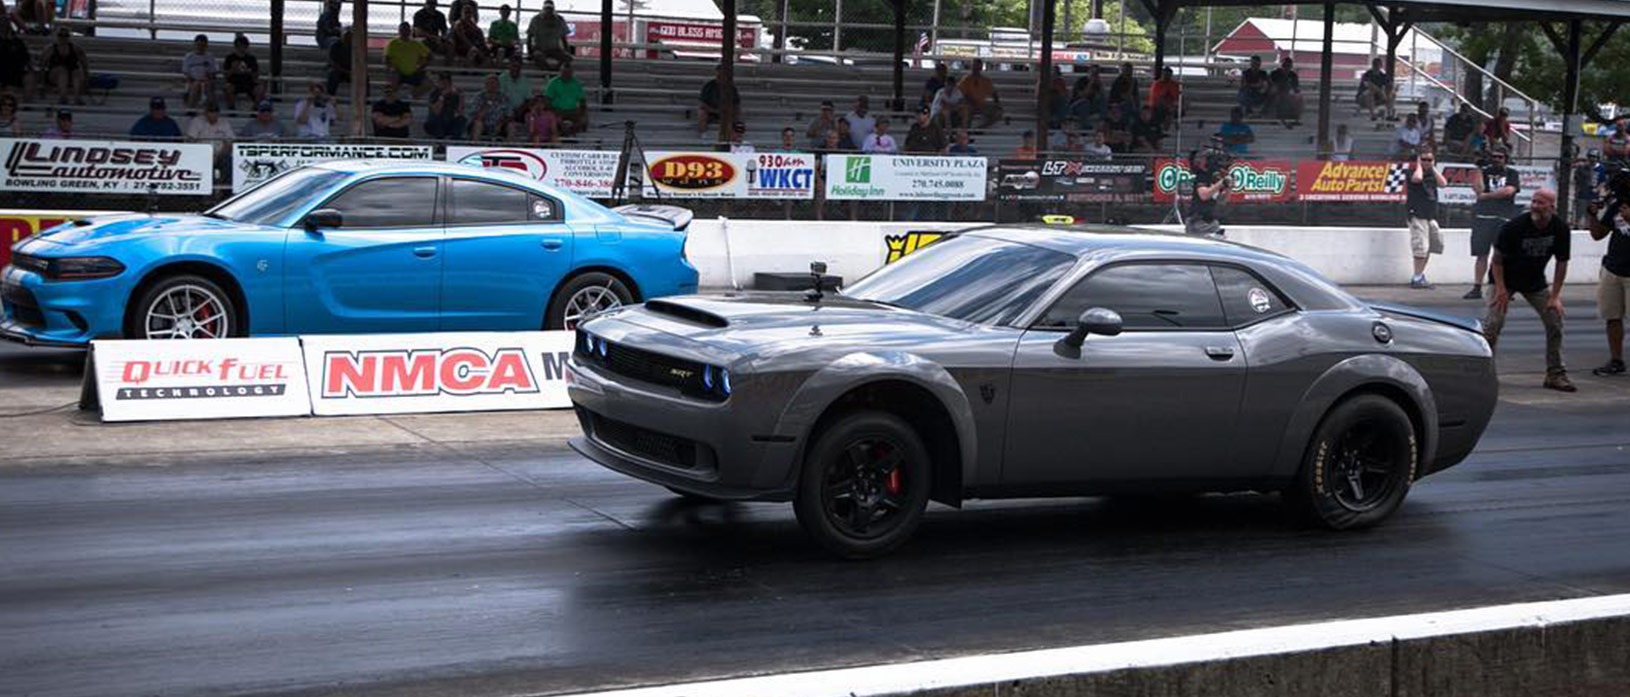 Gray Dodge Demon racing a blue Charger Hellcat